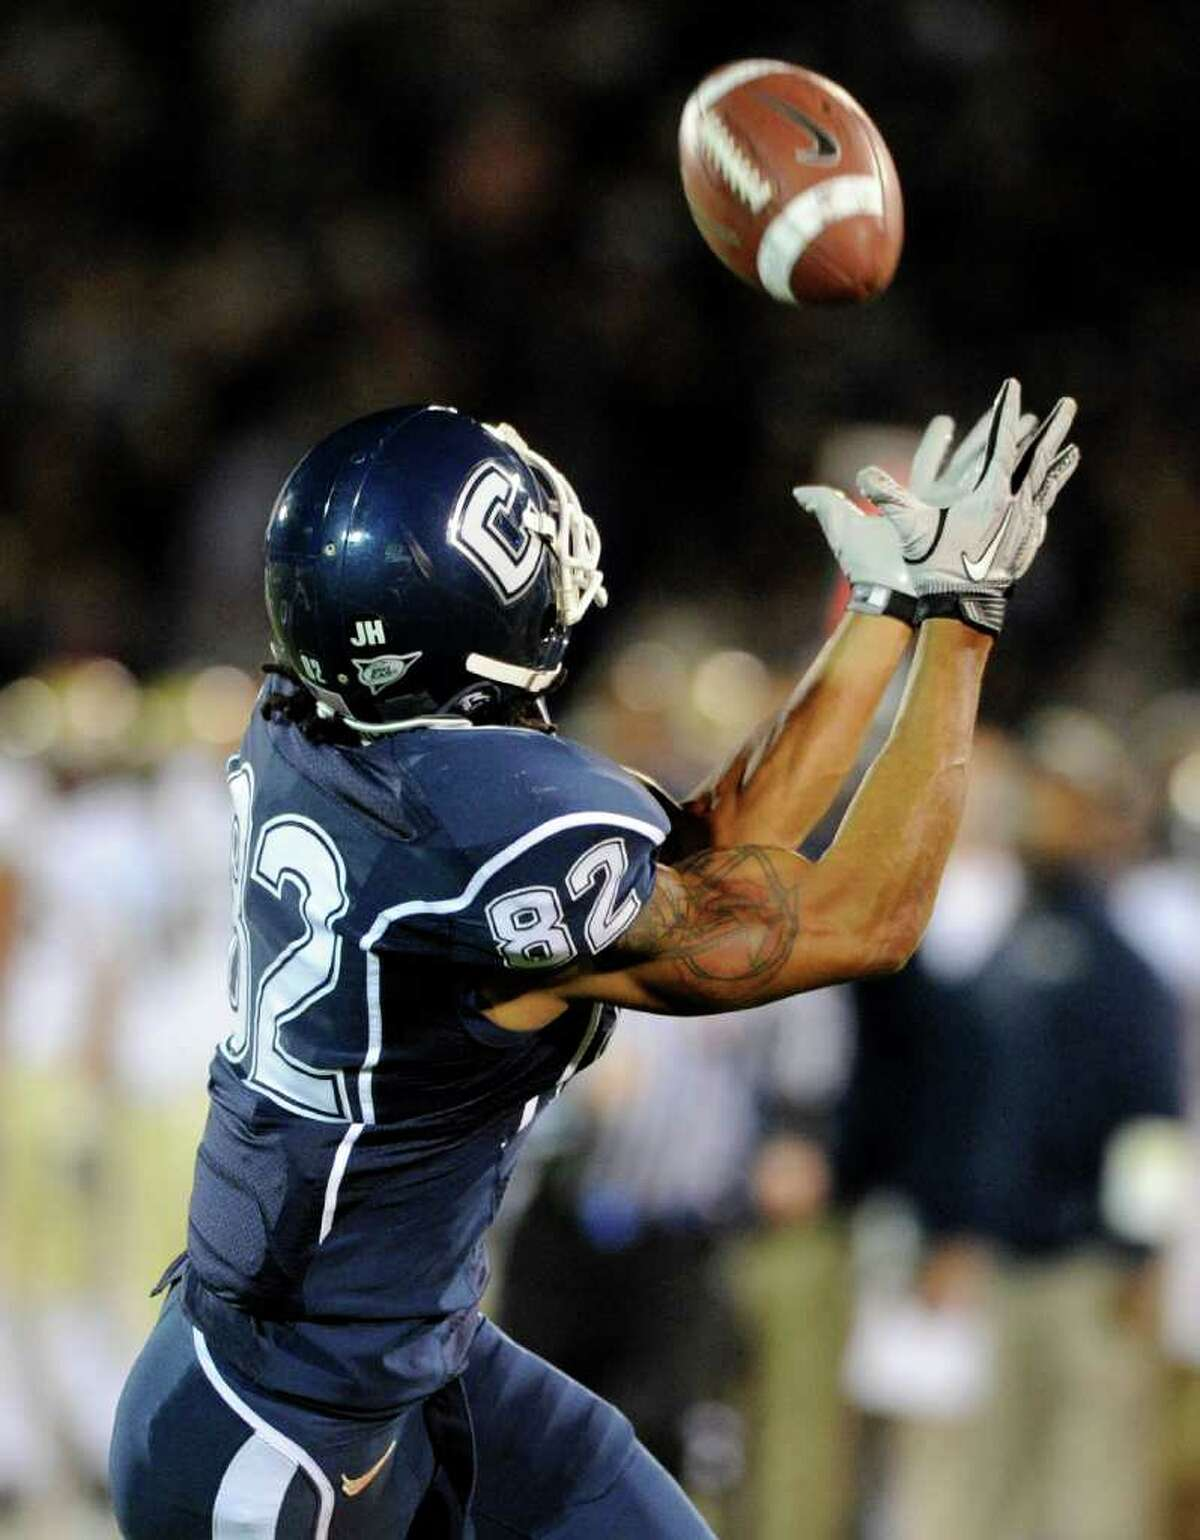 Connecticut's Kashif Moore reaches for a touchdown reception during the first quarter of his team's NCAA college ootball game against Pittsburgh in East Hartford, Conn., on Thursday, Nov. 11, 2010. (AP Photo/Fred Beckham)